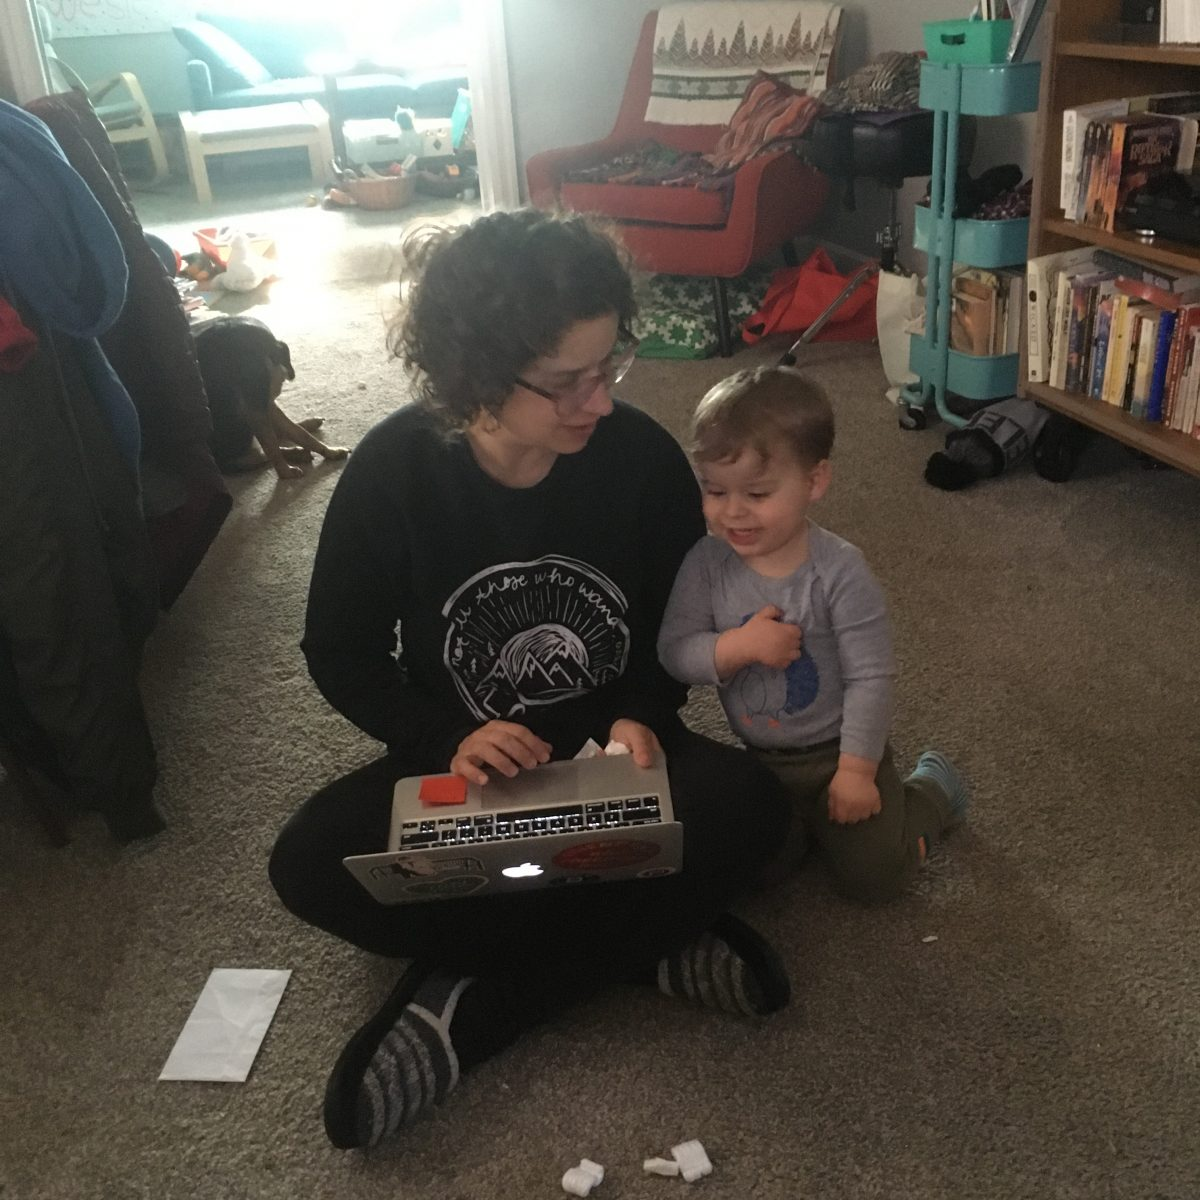 Megan and toddler son sitting on carpeted floor of home with book shelf in the background. Megan is crosslegged with a laptop on her lap.